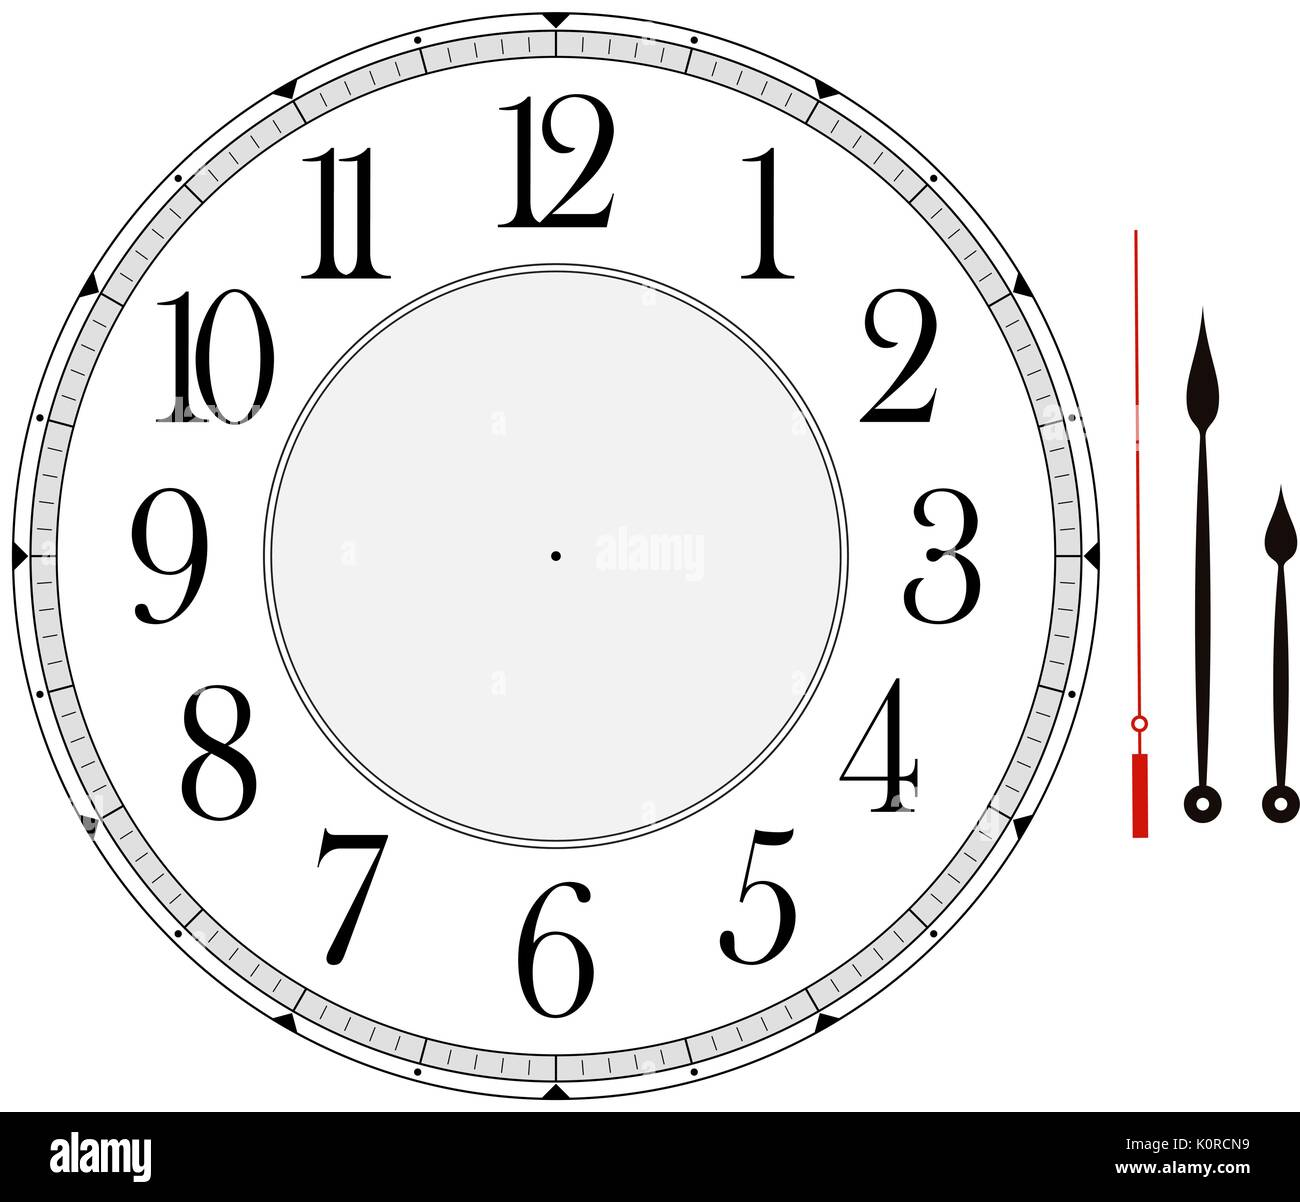 Clock Face Template With Hour Minute And Second Hands To